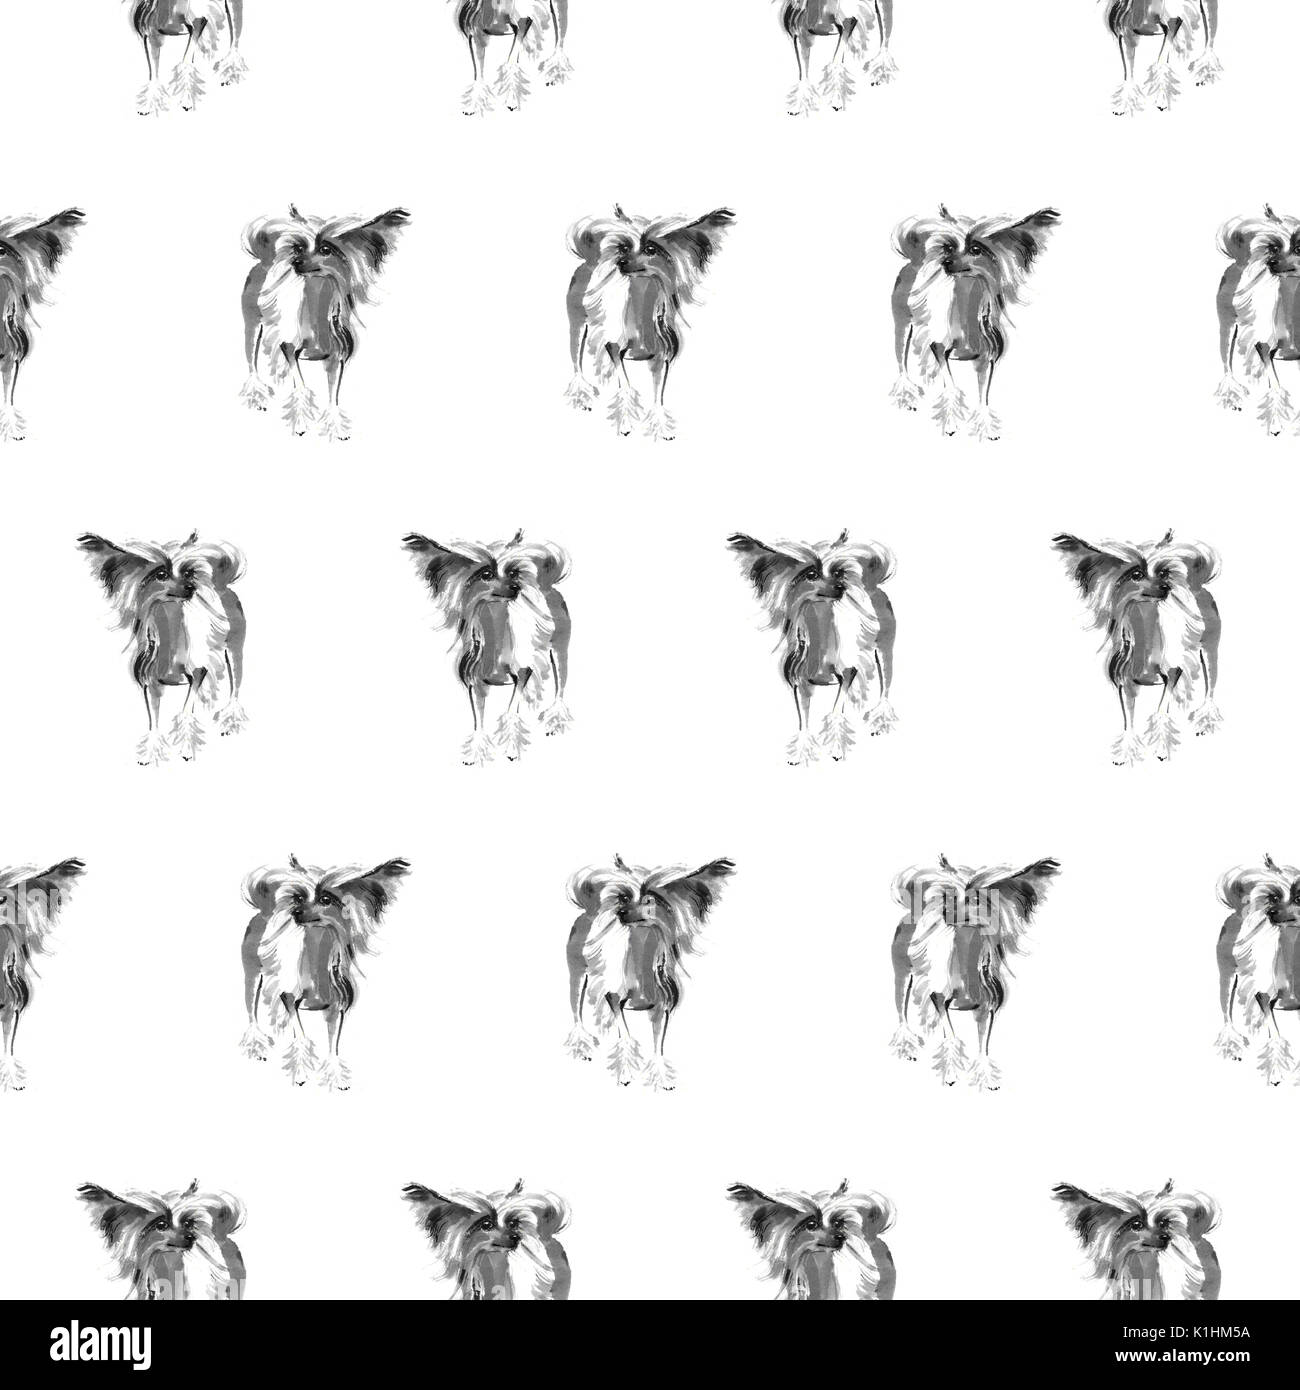 Seamless pattern with Chinees crested dogs, handmade ink painting, isolated on white background. Chinese zodiac background. Textile design. - Stock Image